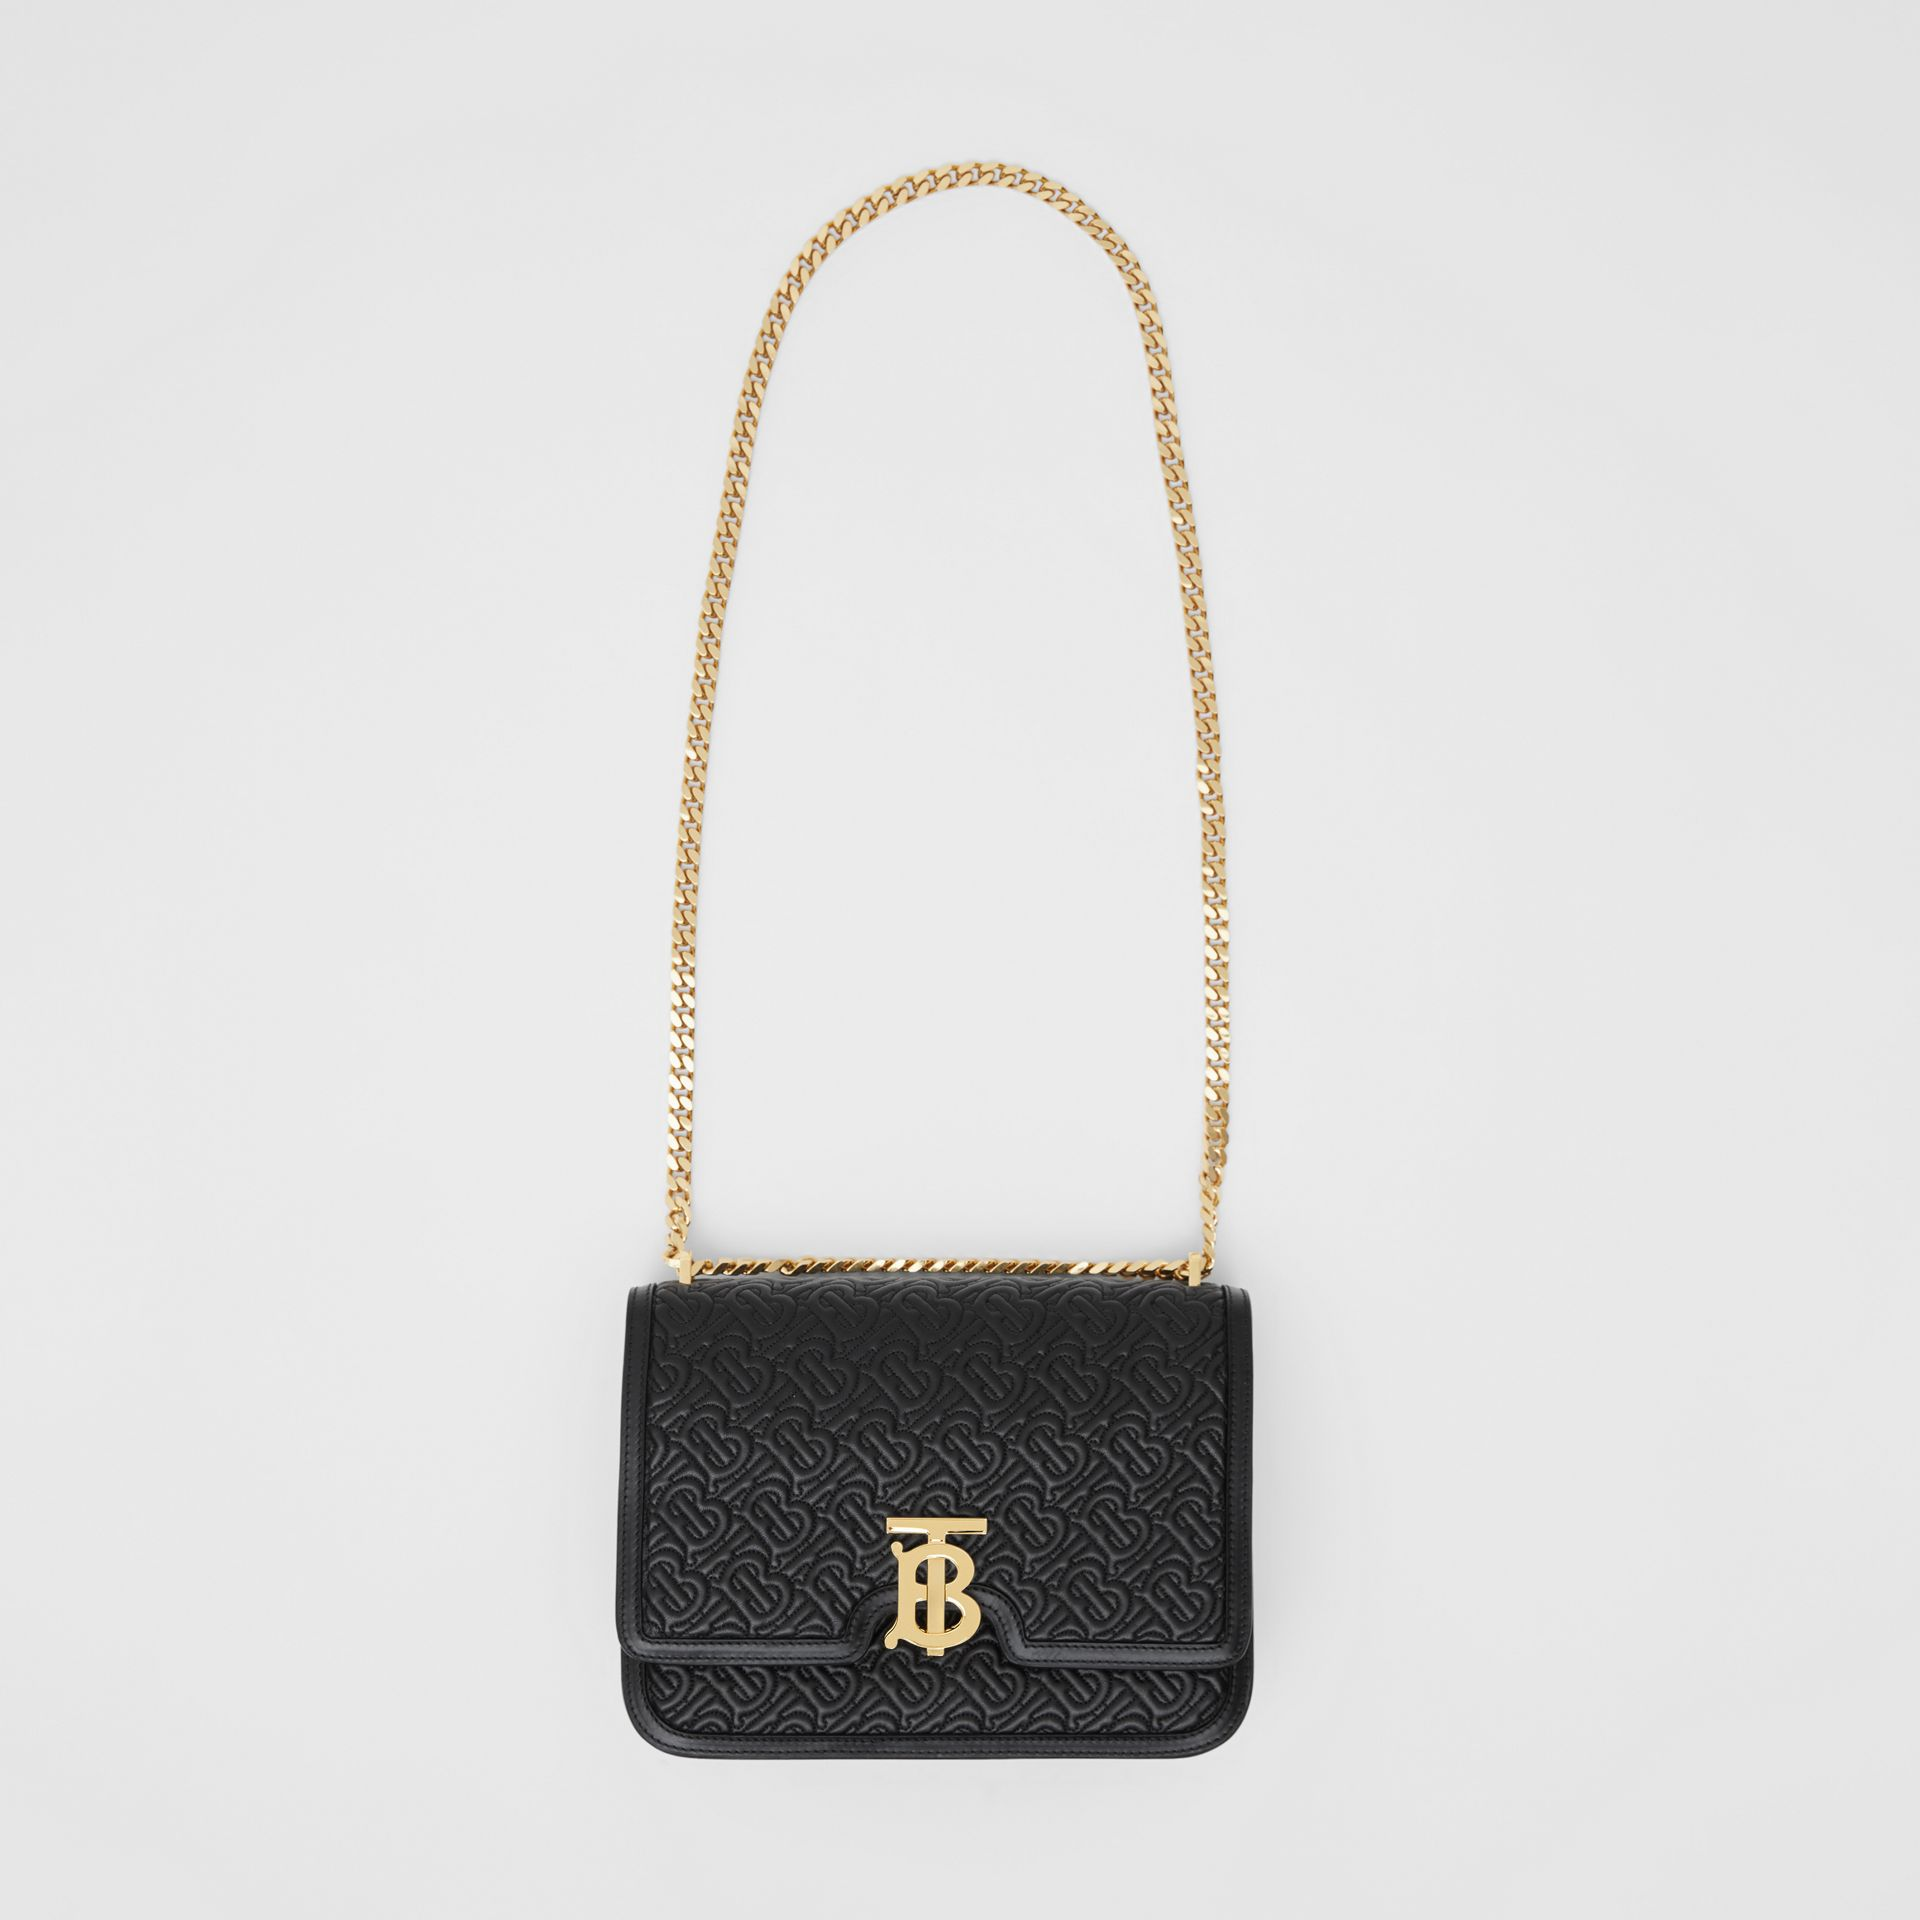 Medium Quilted Monogram Lambskin TB Bag in Black - Women | Burberry Singapore - gallery image 3